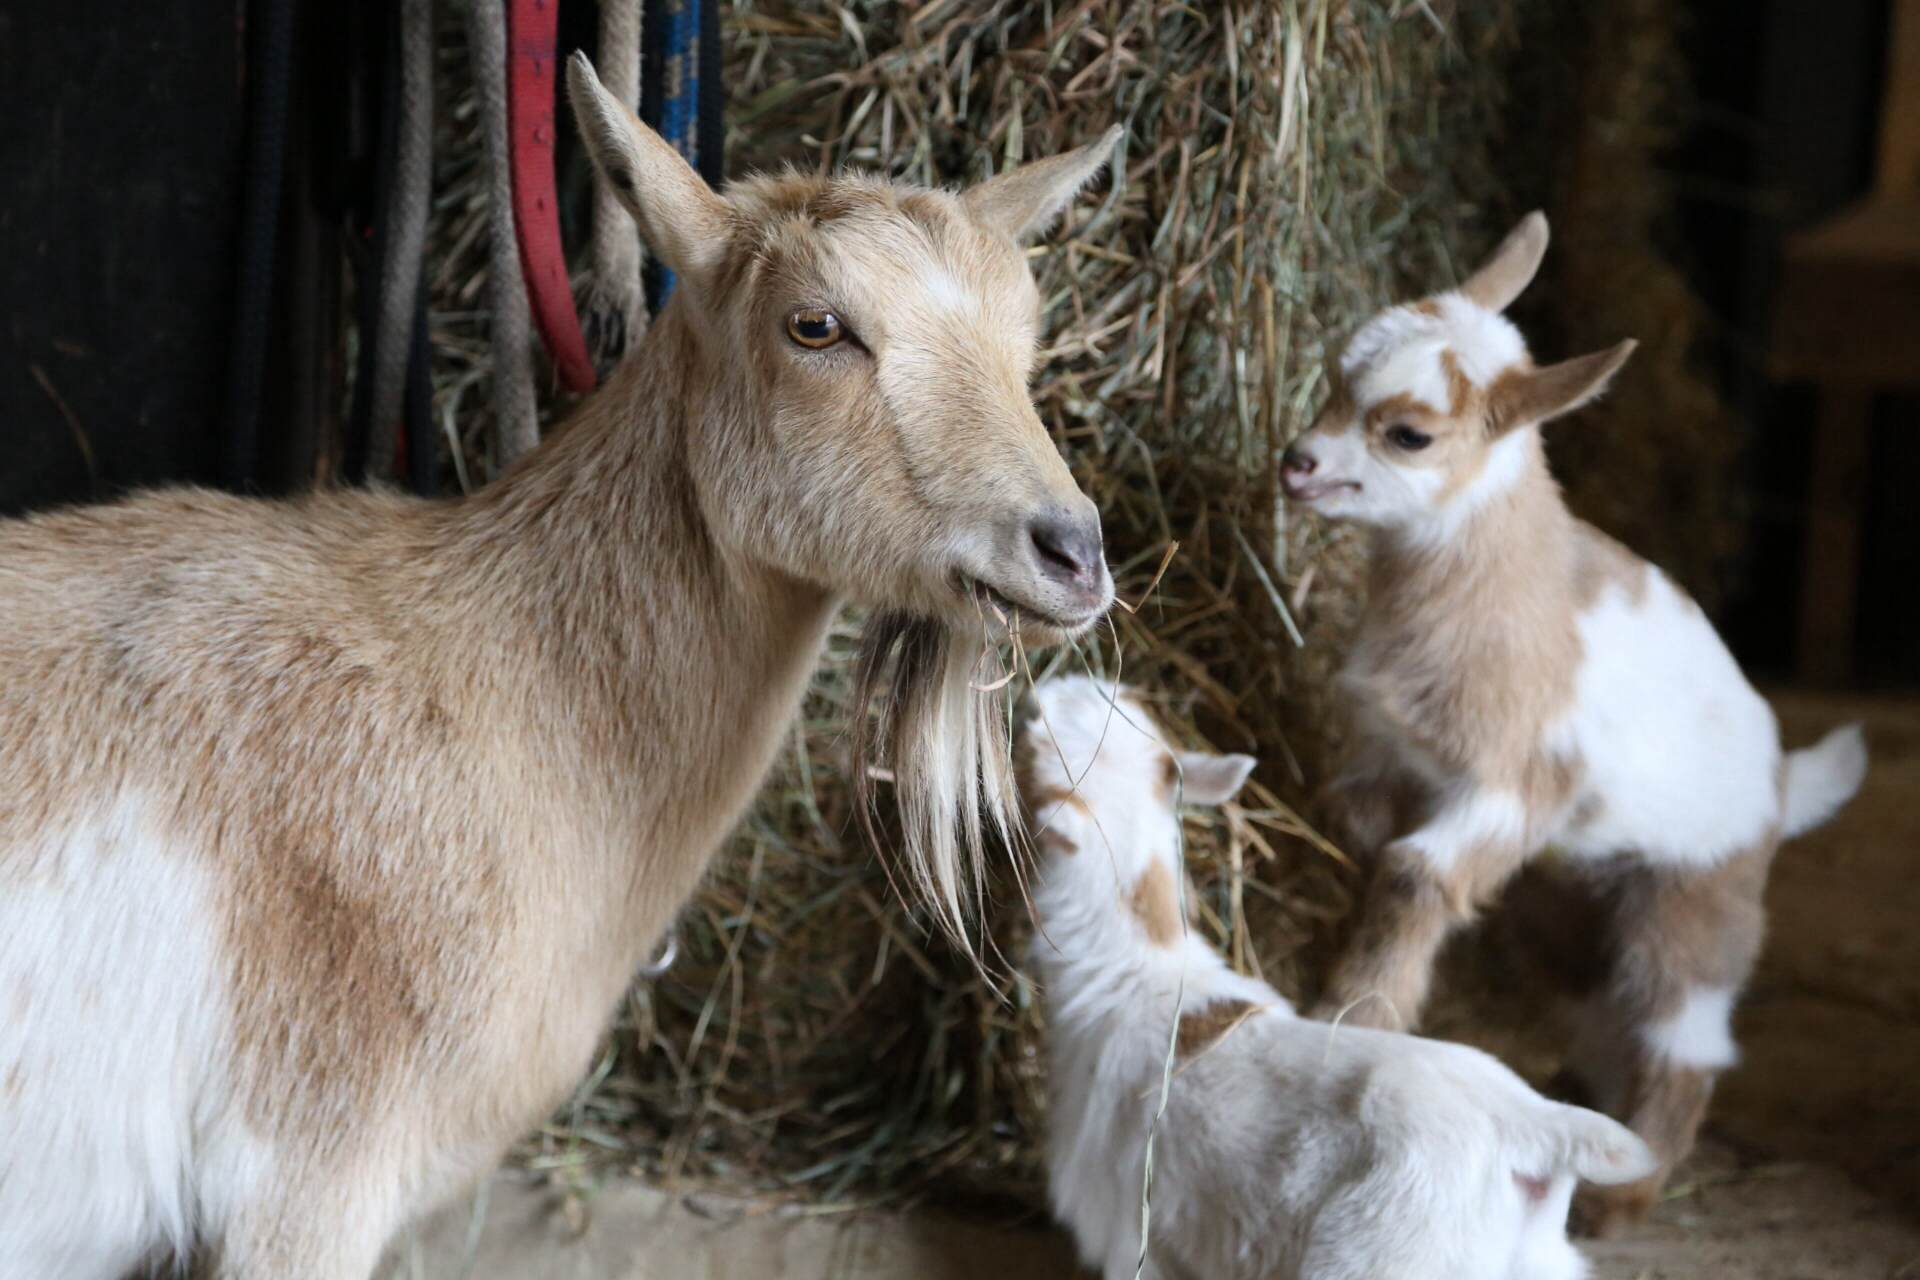 Nigerian dwarf goats.  Yep, we're getting goats.  More on that later!